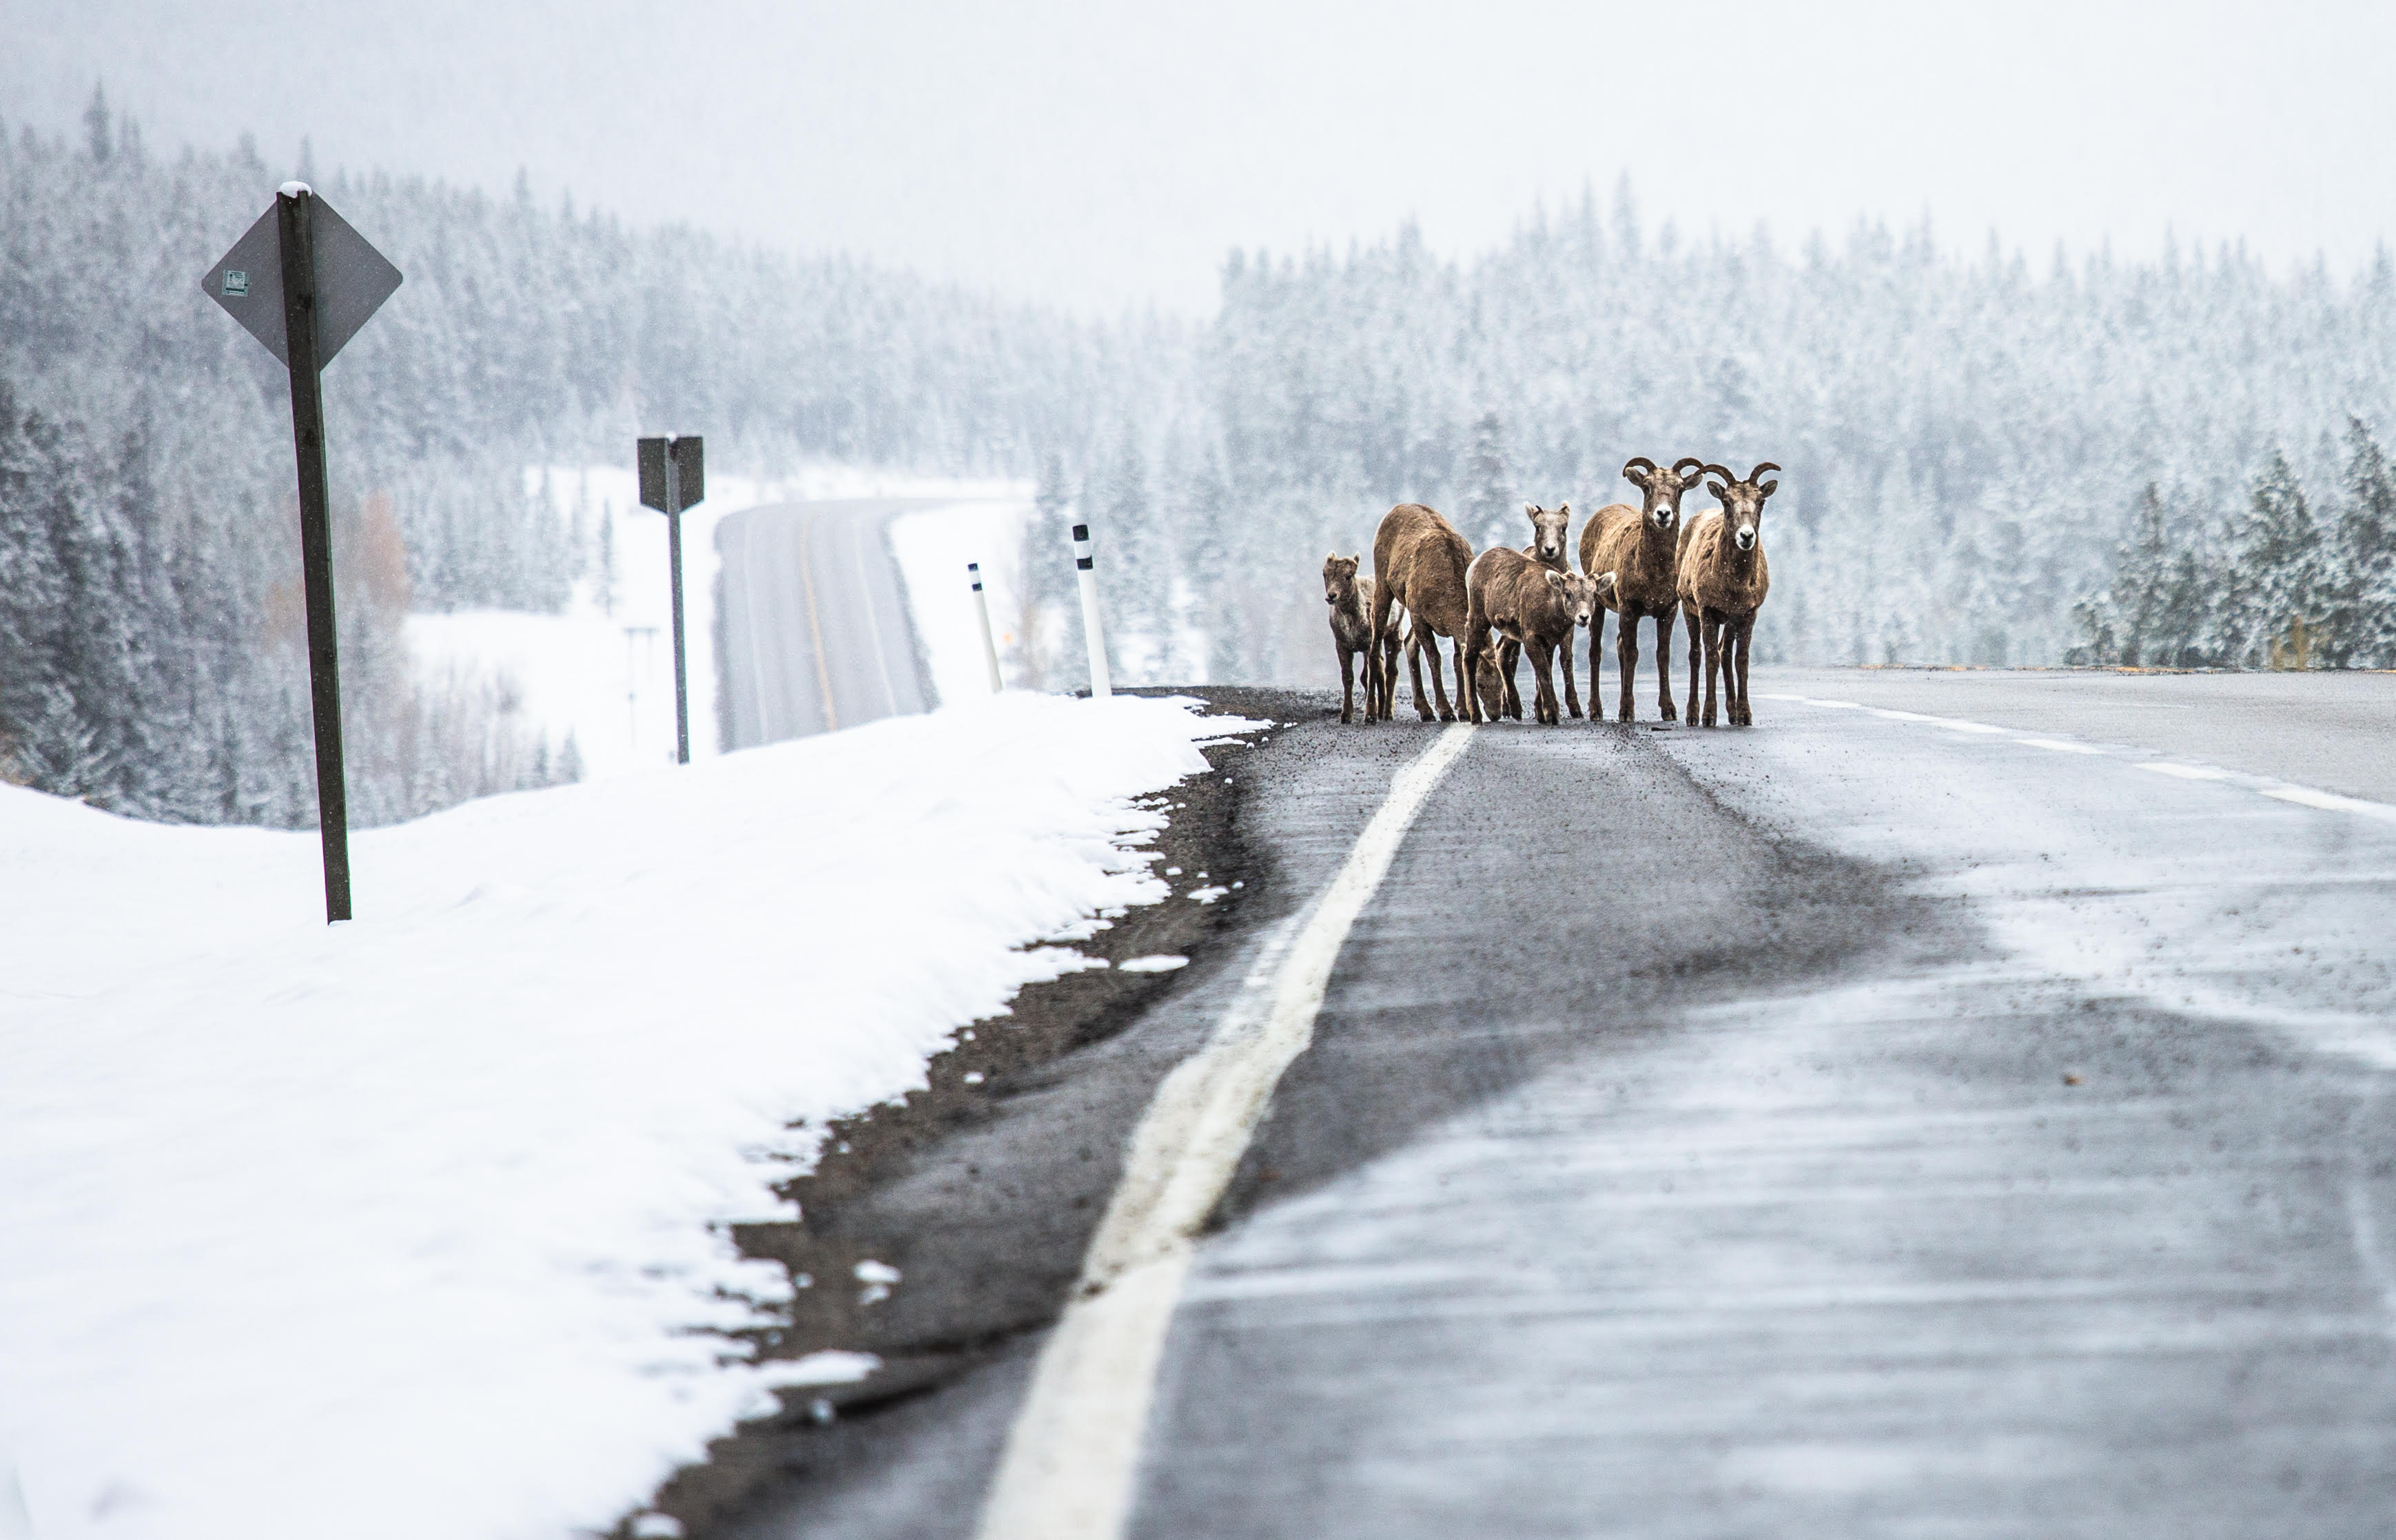 Mountain goats walk on the side of a highway in winter